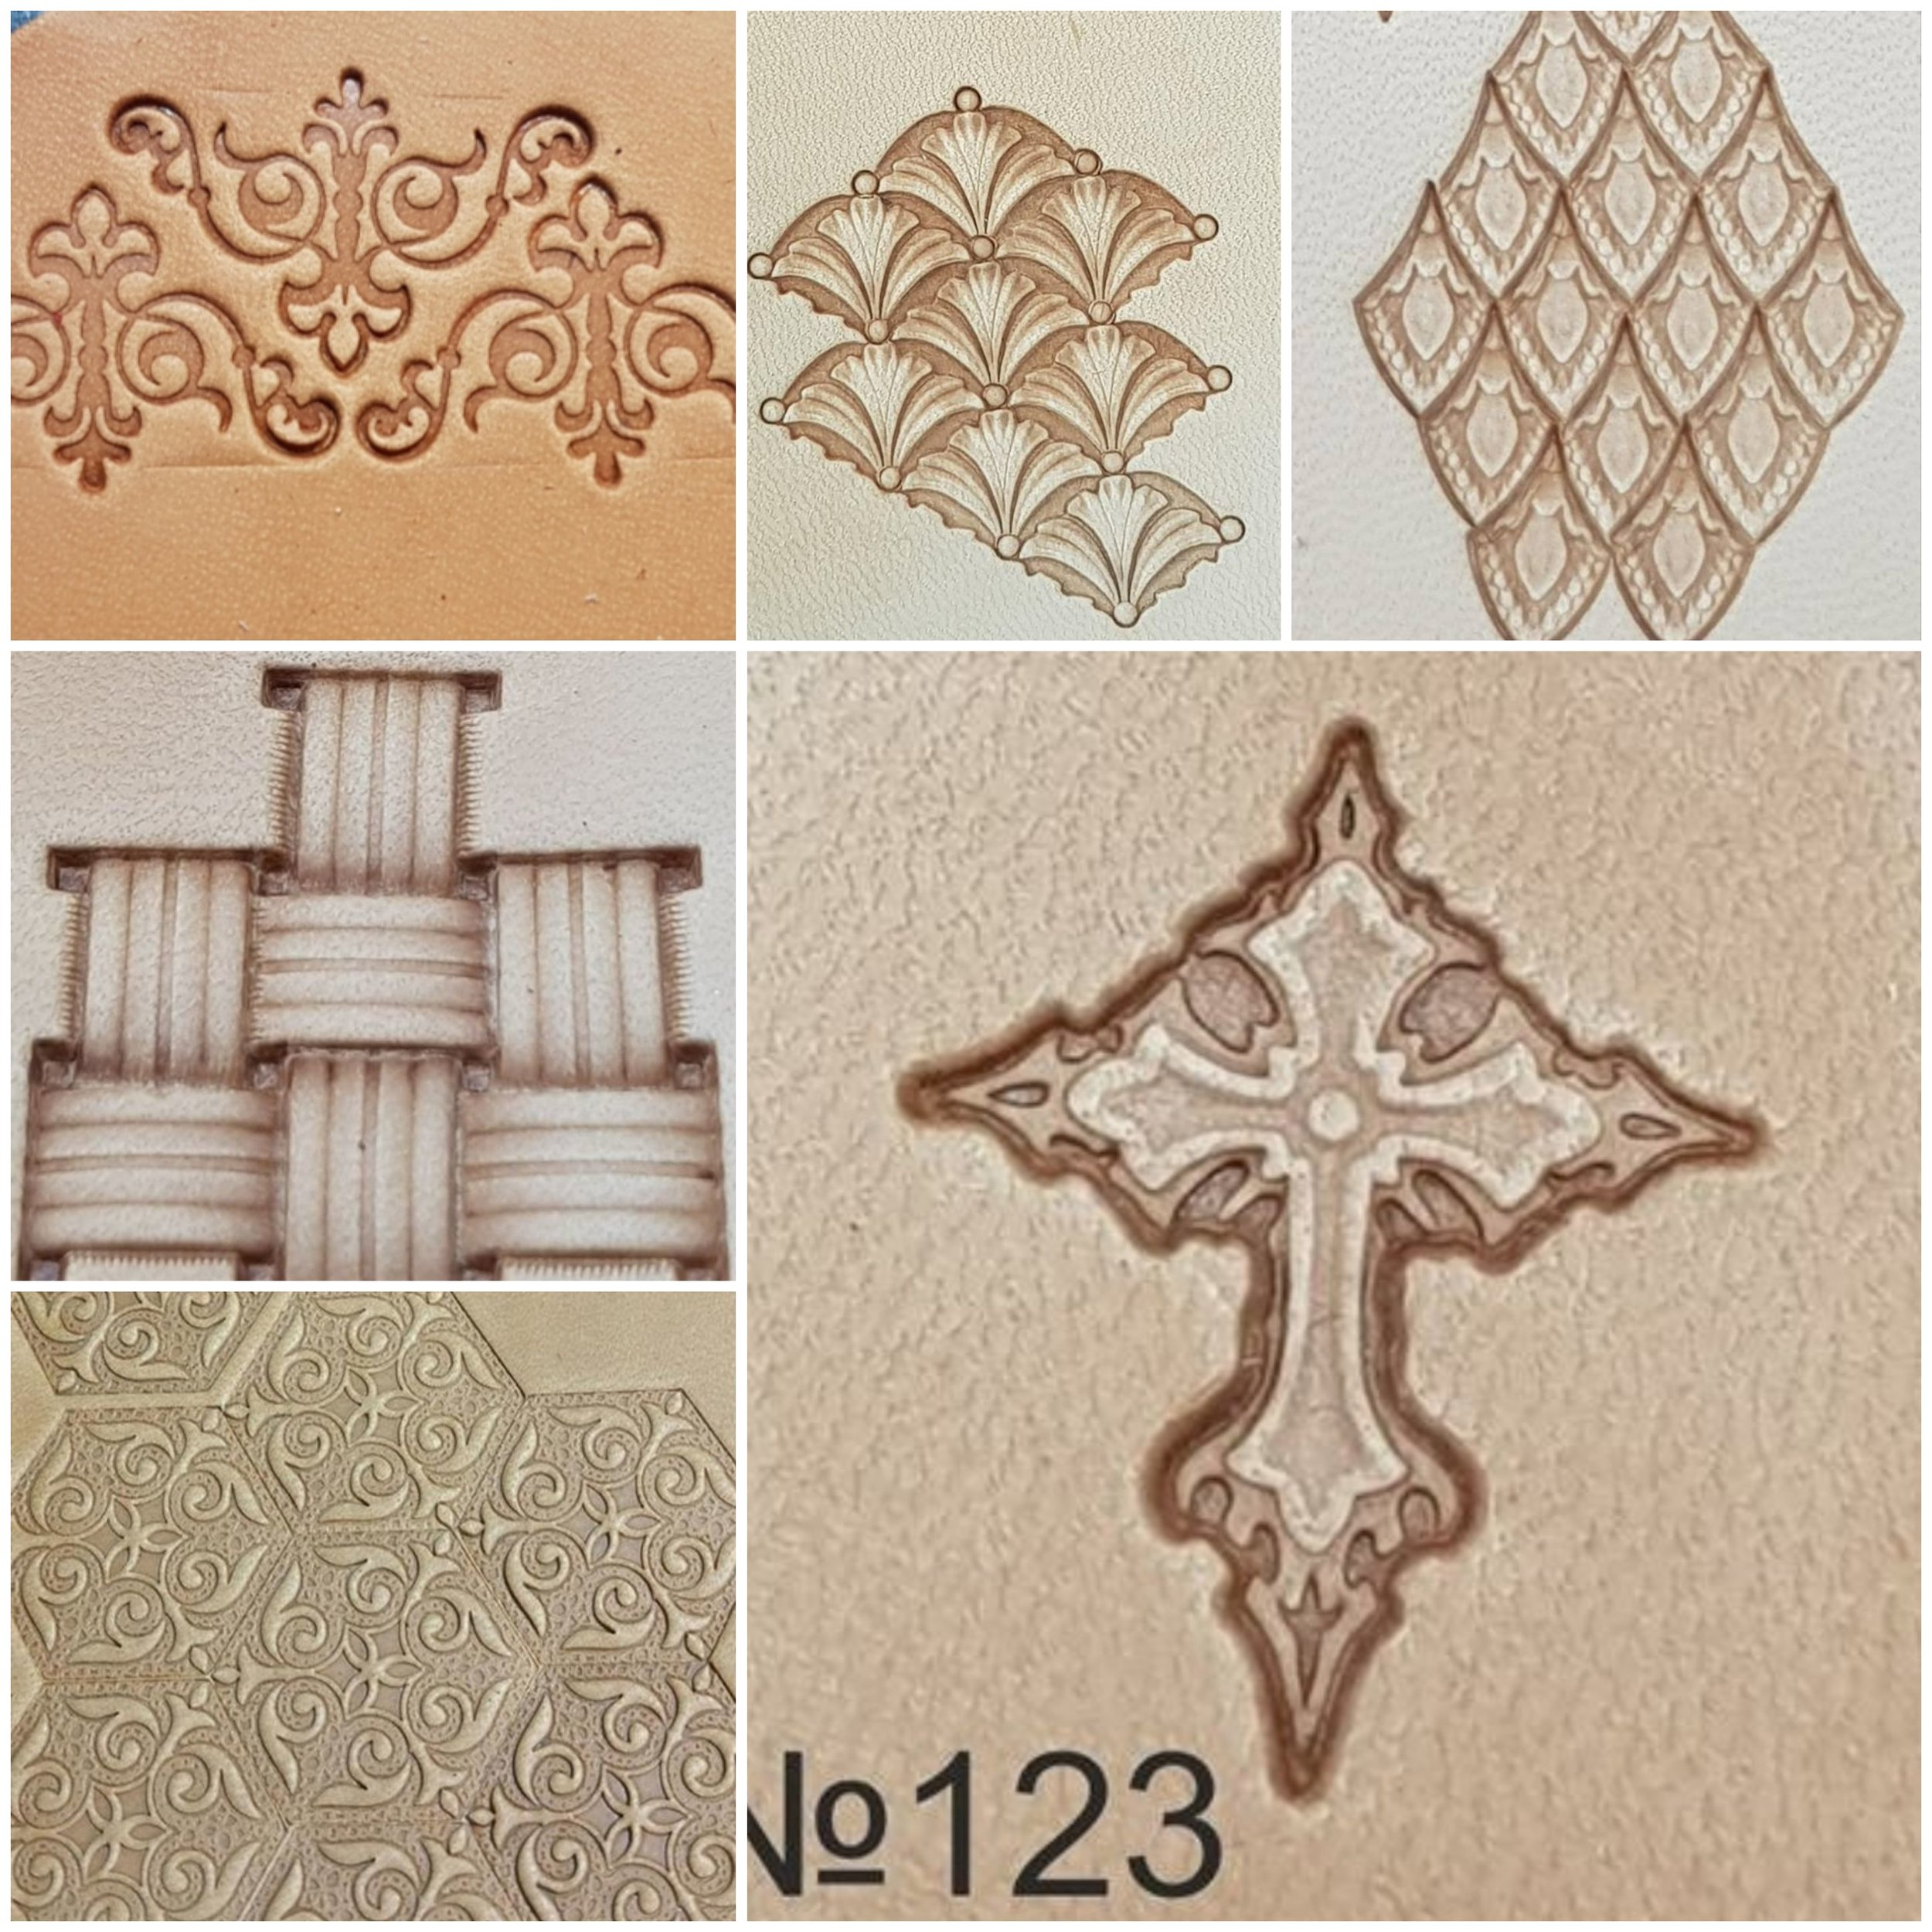 Stamp Batch 4 - Please quote batch number with stamp number1. Triangle Scrolls (duplicate in batch 1)2. Tidal Waves3. Dragon Scales4. Basket Weave5. Polygon Scroll6. Decorative Cross